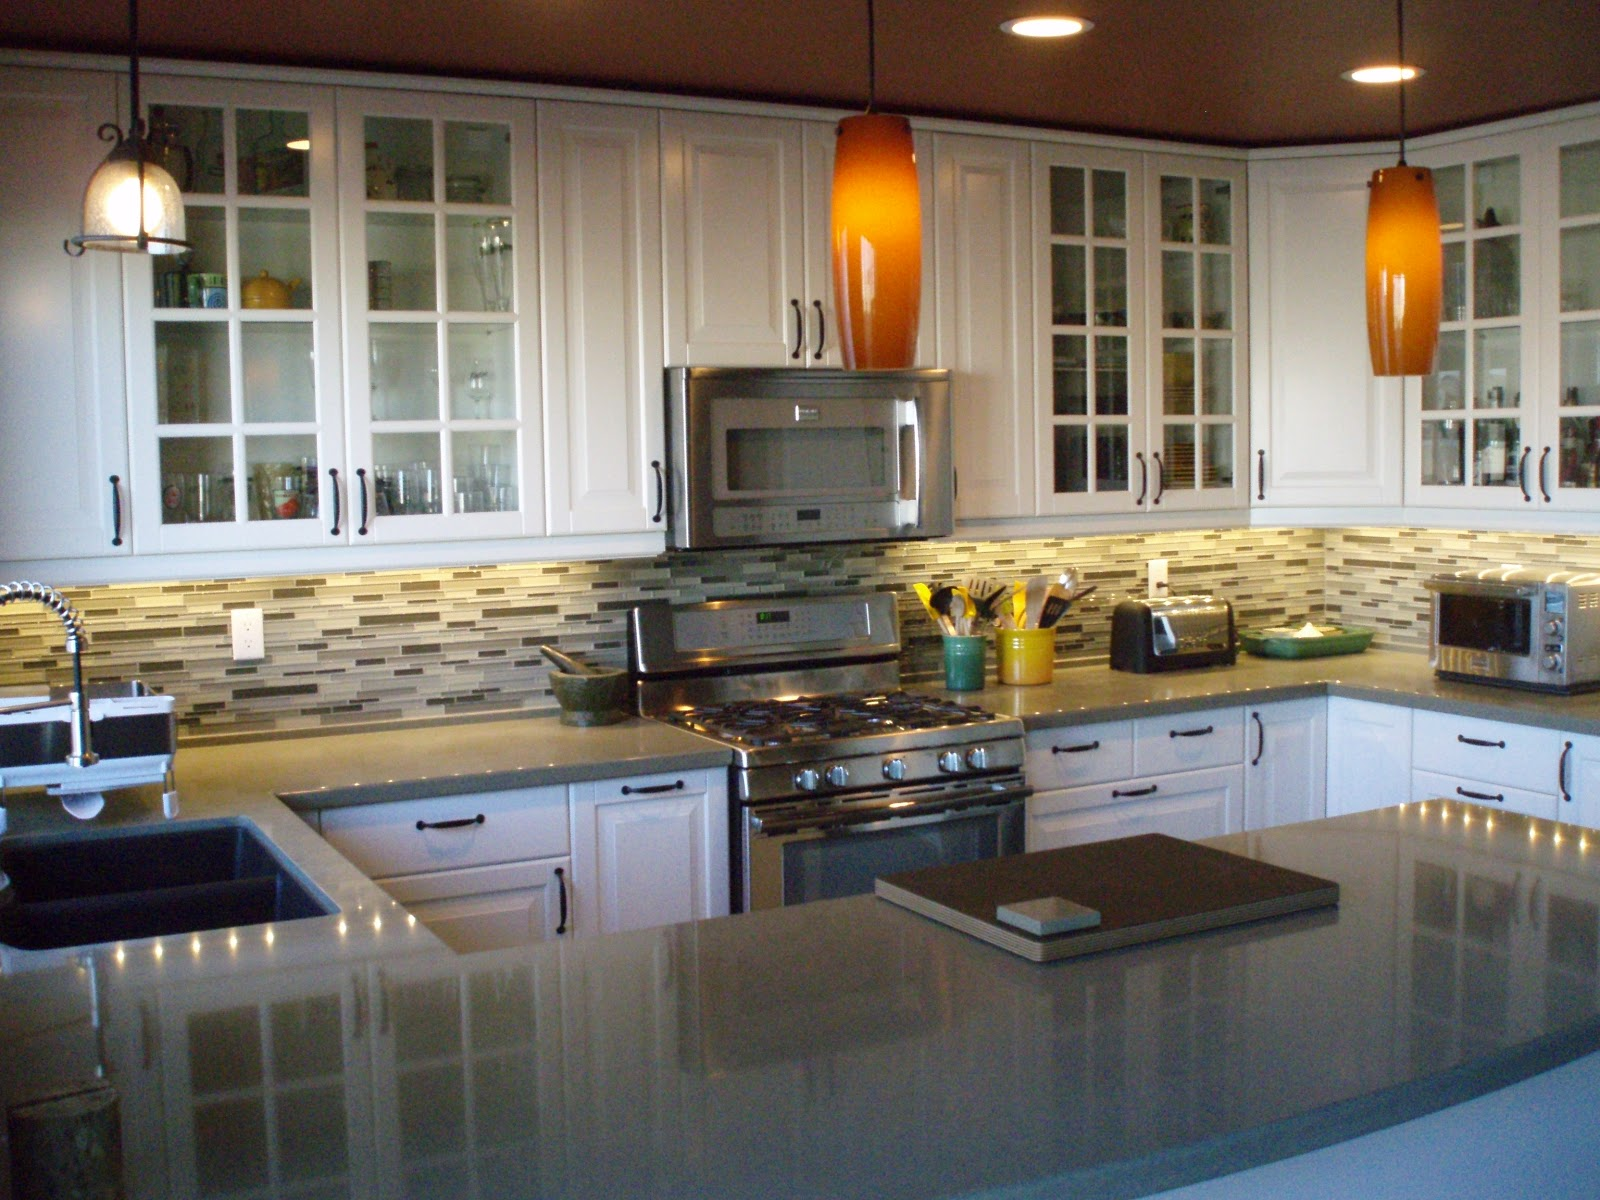 11 kitchen remodeling cost How to Save Money on an IKEA Kitchen